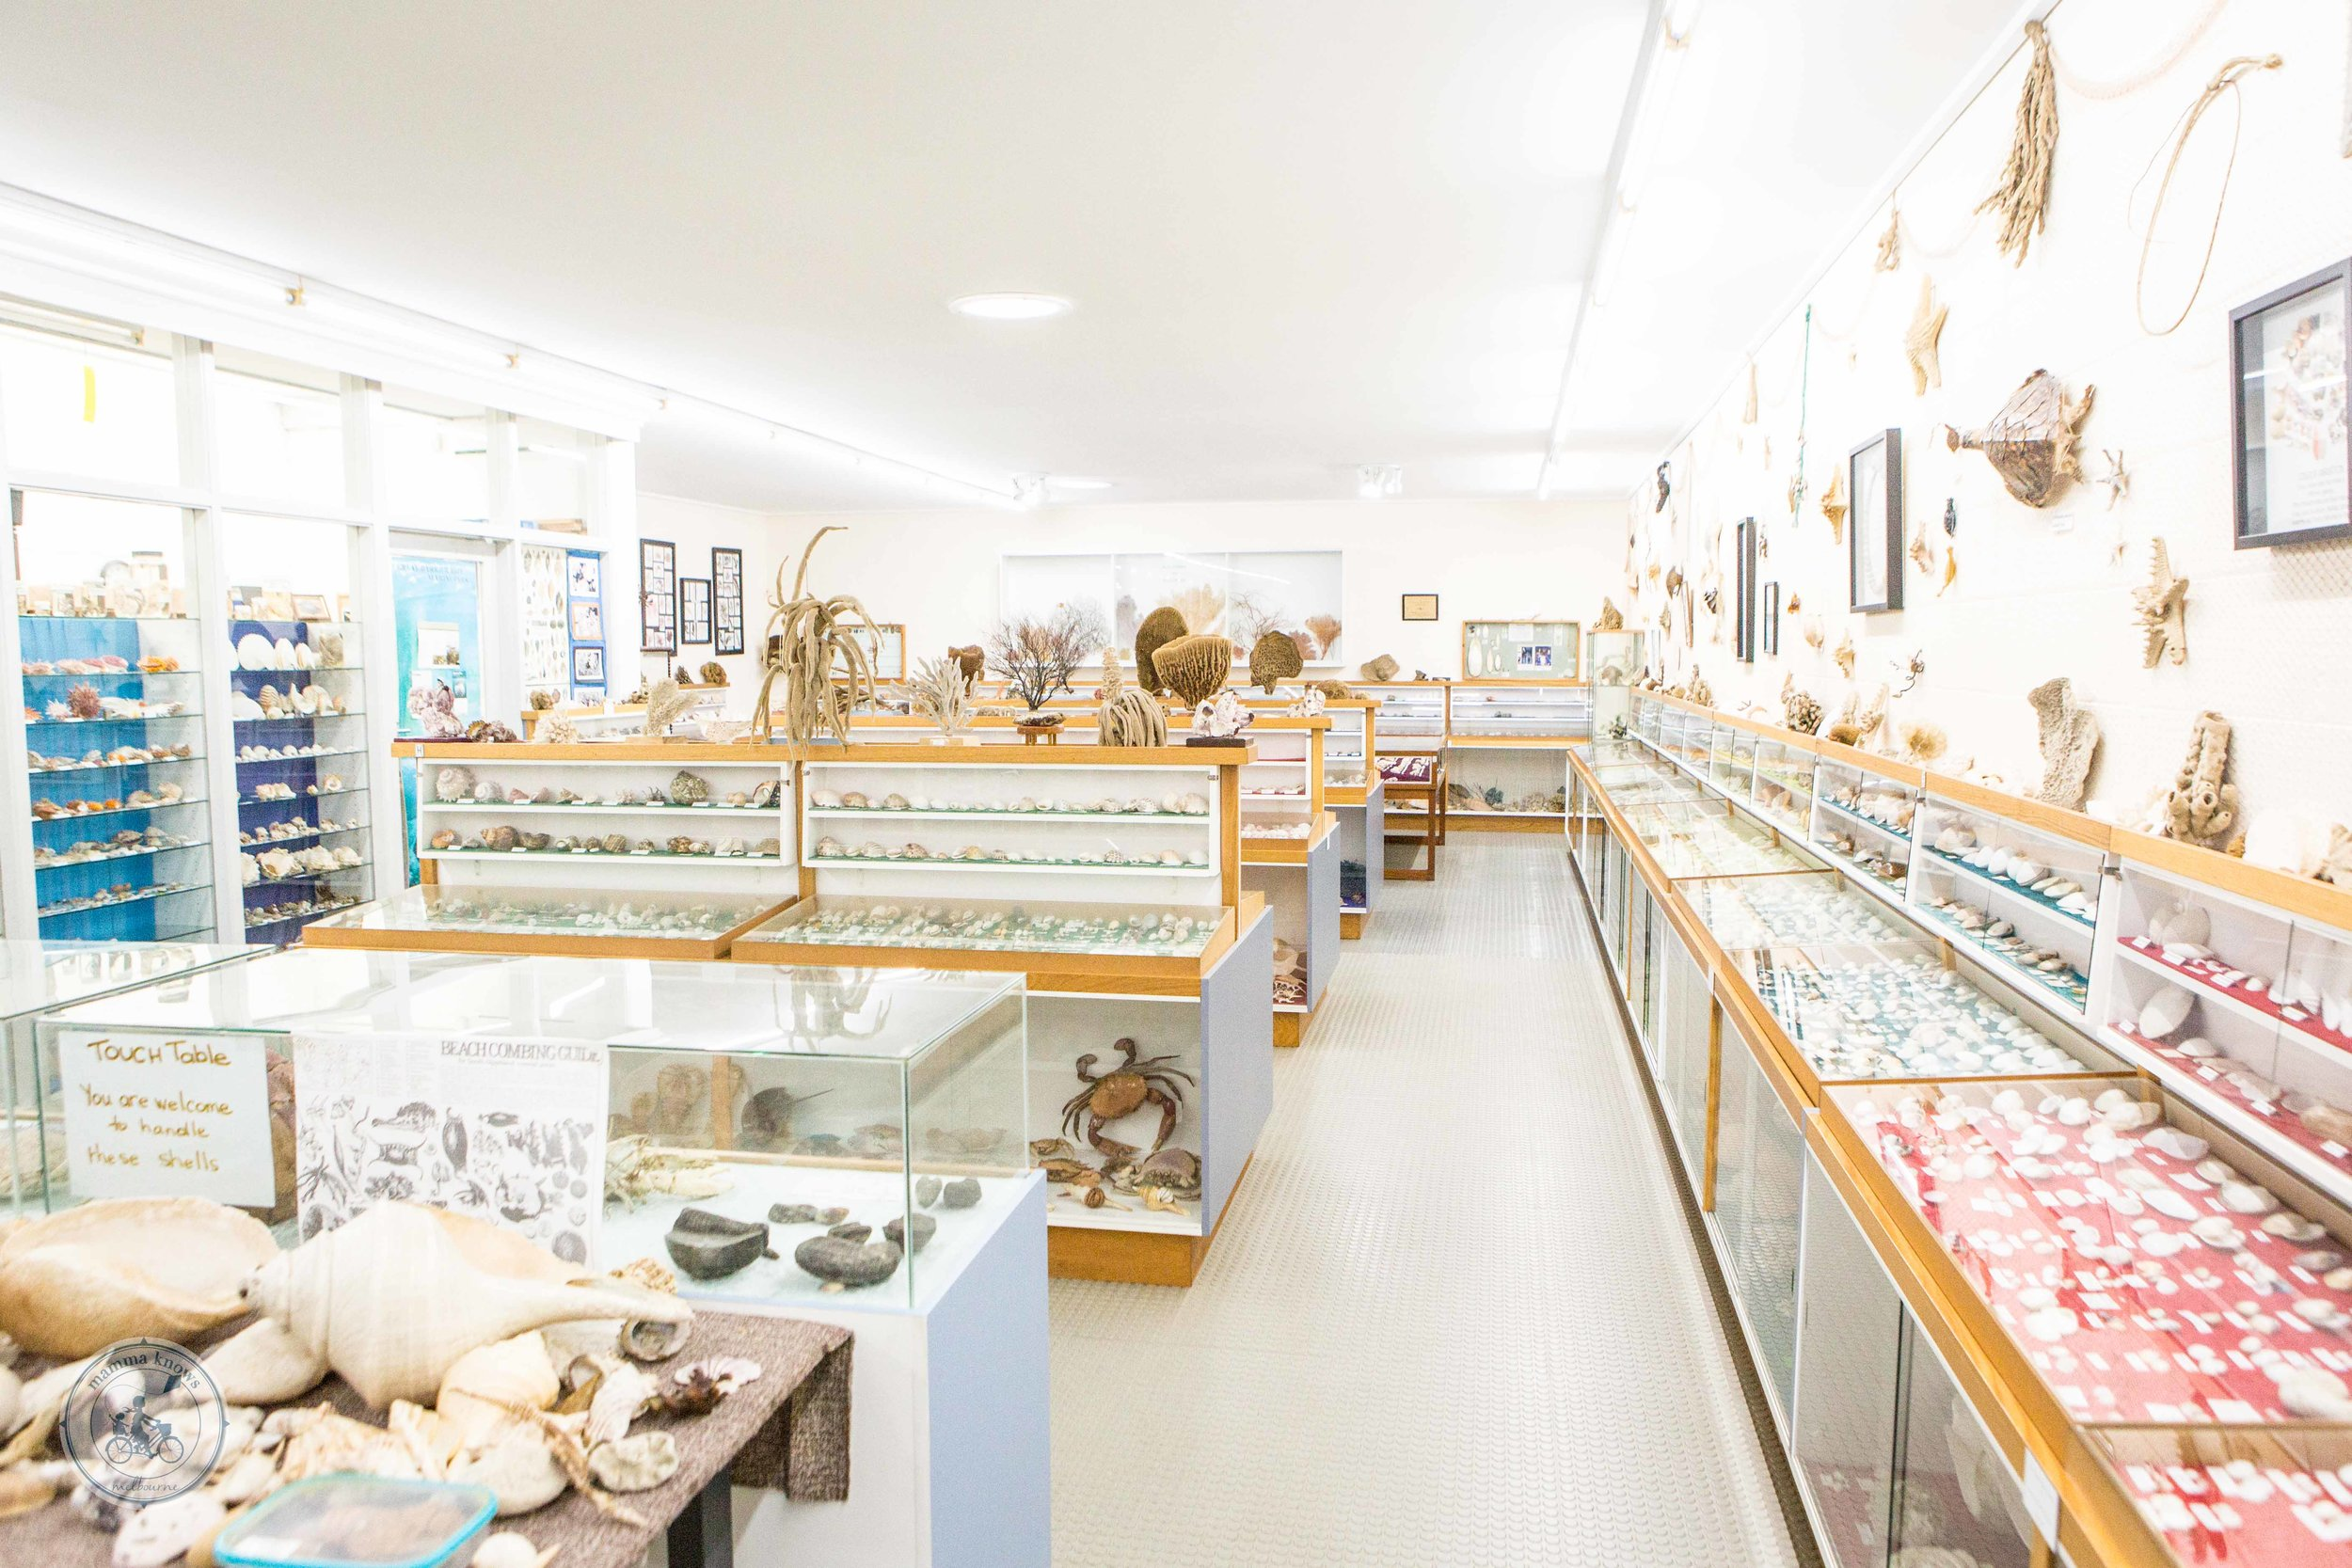 South Gippsland Conservation Society Shell Museum (1 of 26).jpg